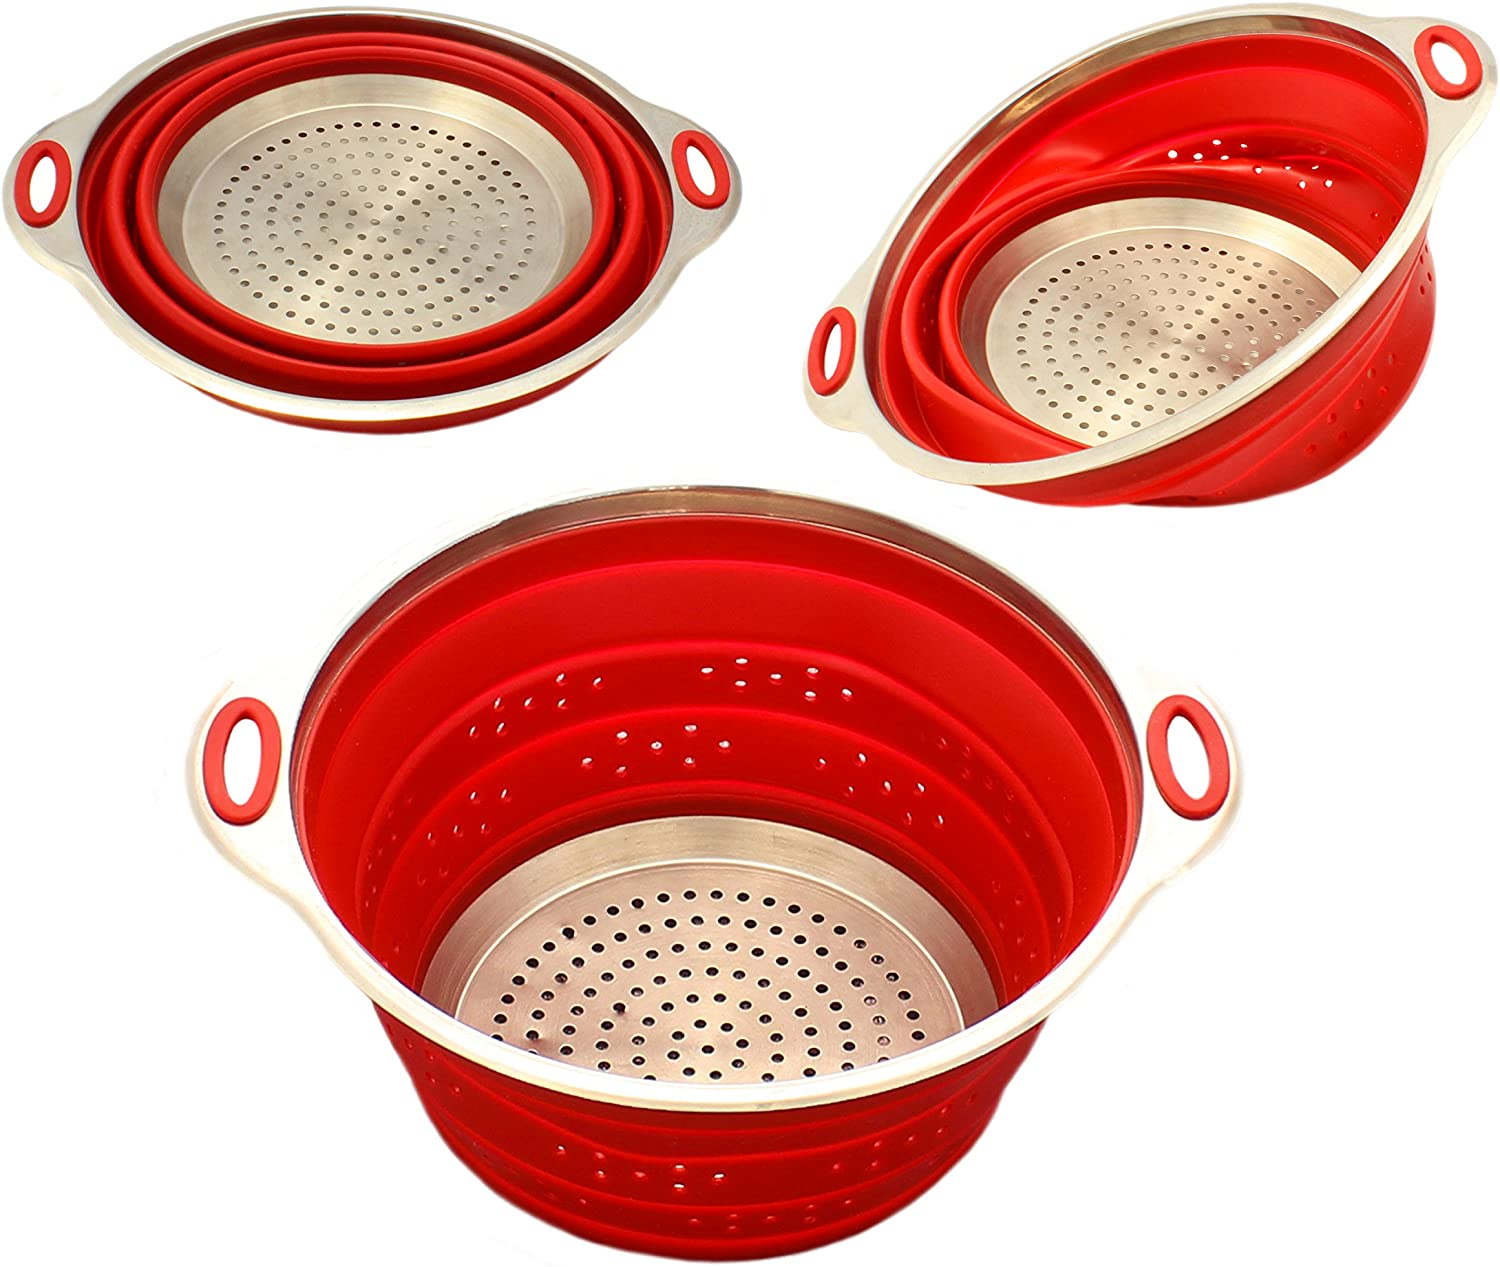 Zoie + Chloe Stainless Steel and Silicone Collapsible Strainer